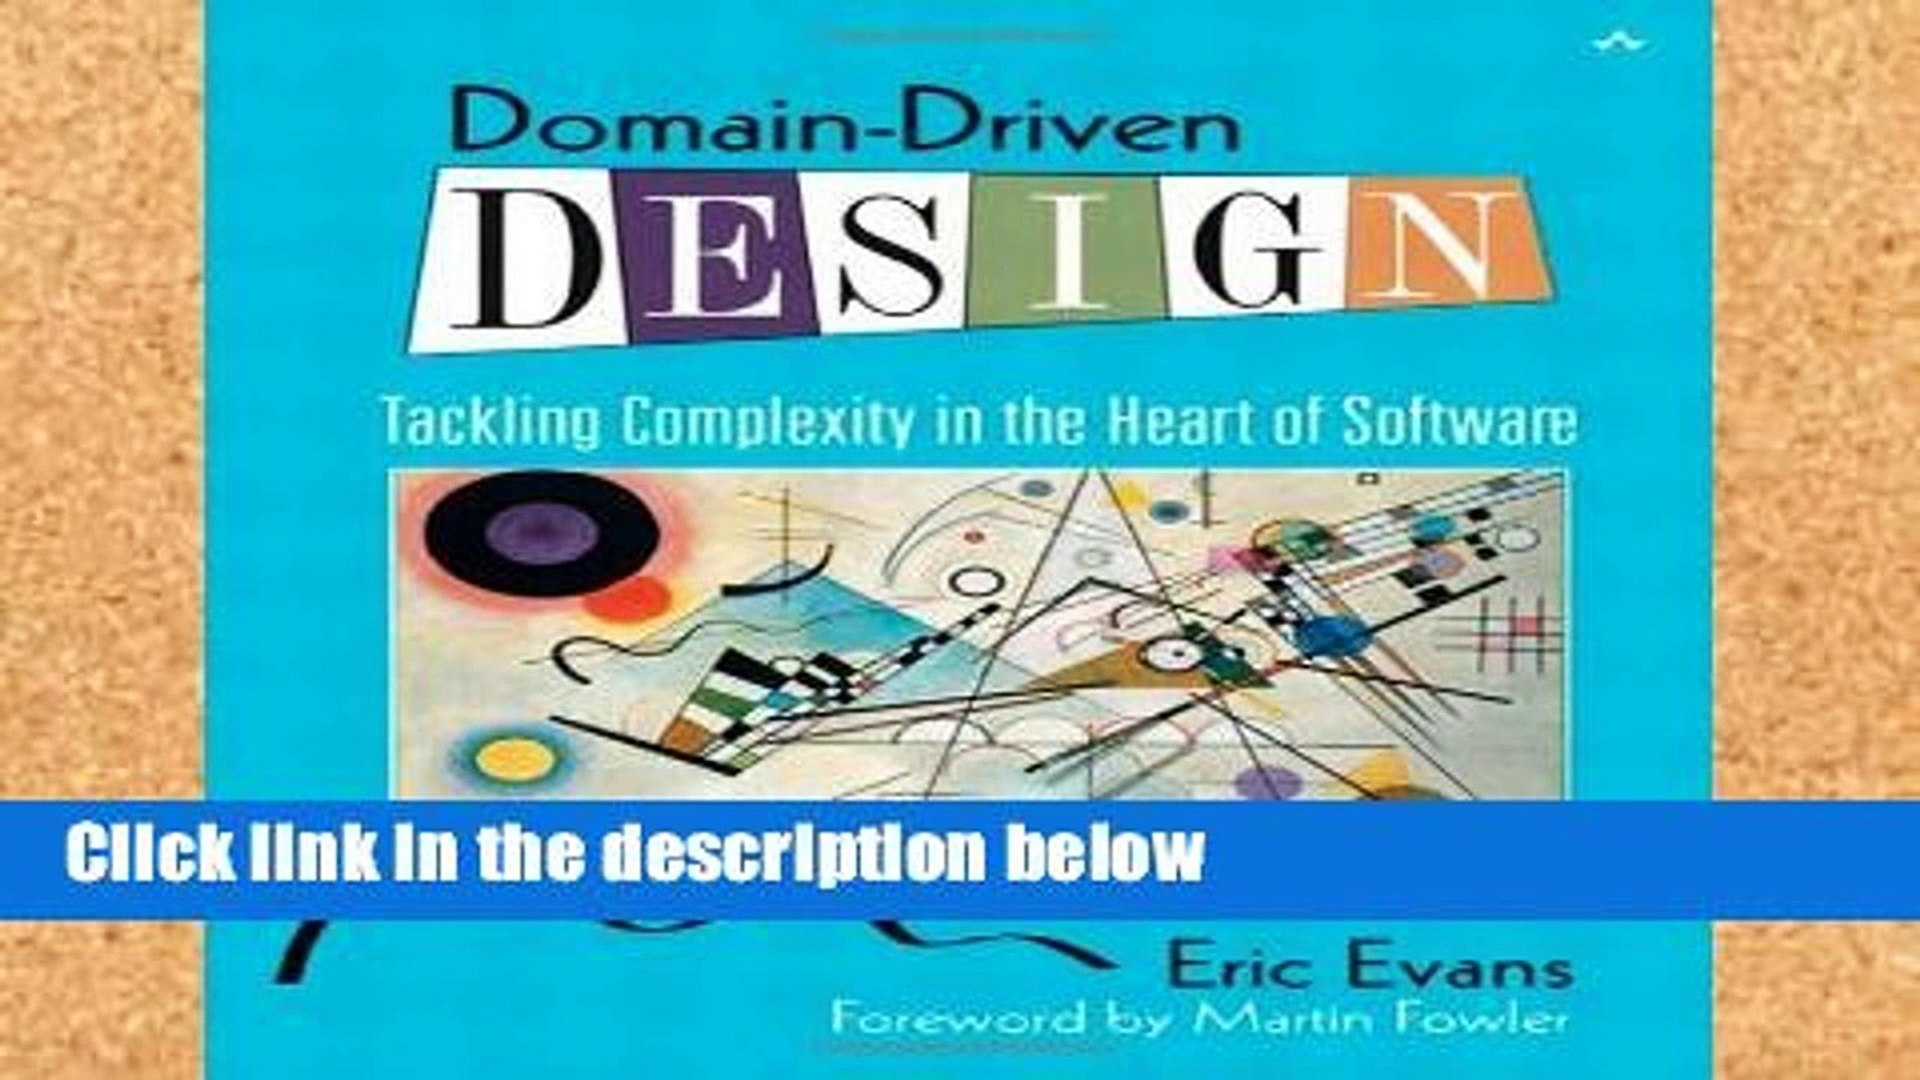 Popular Domain-Driven Design: Tackling Complexity in the Heart of Software